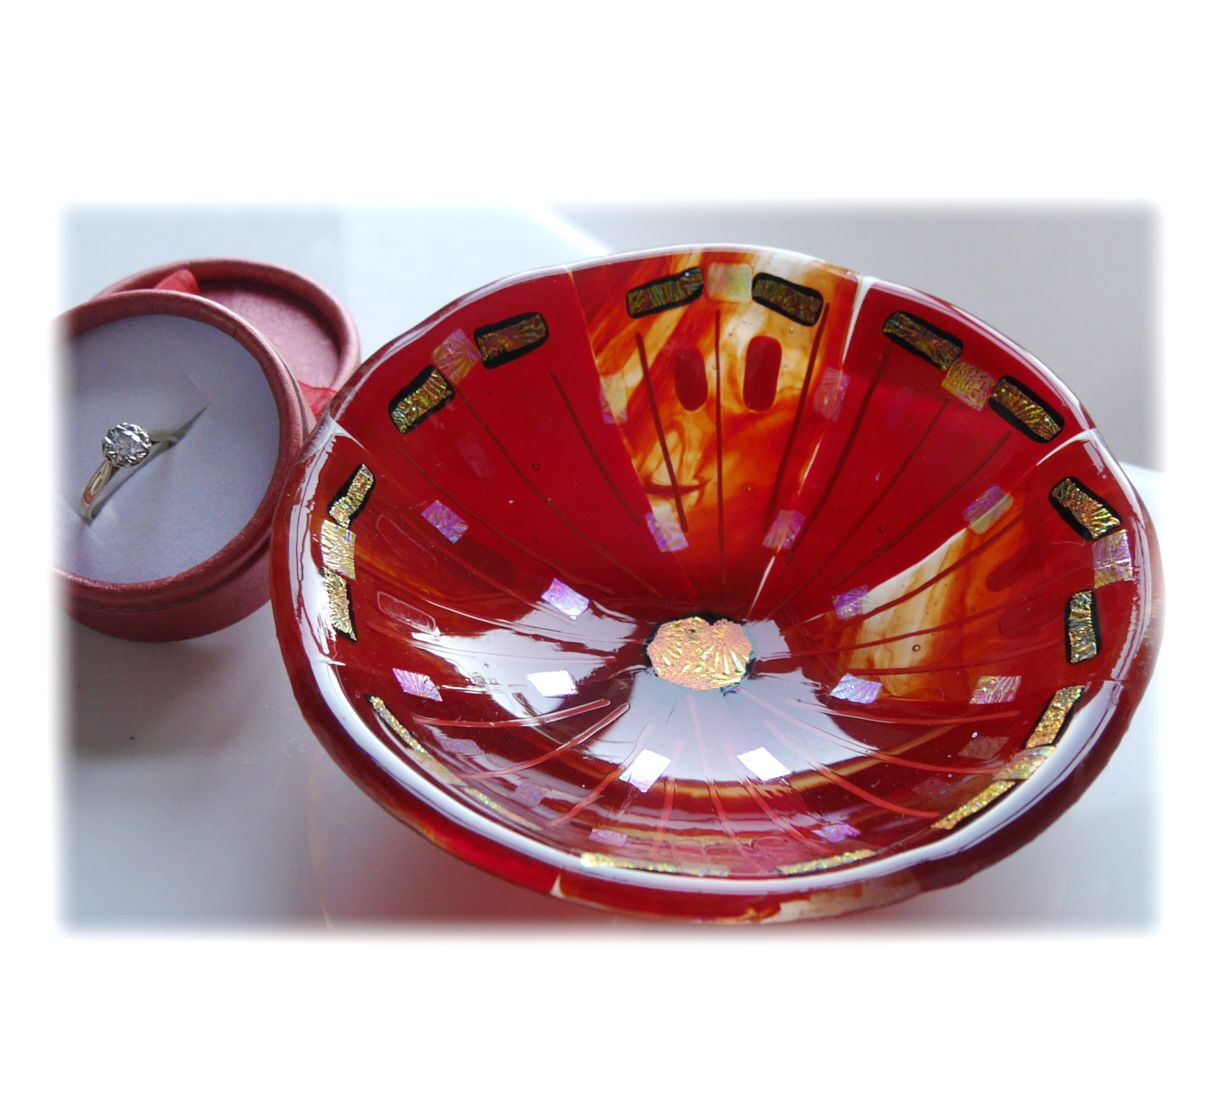 13.5cm Round Red Dichroic Bowl FUSED 040 #1810 FREE 16.00